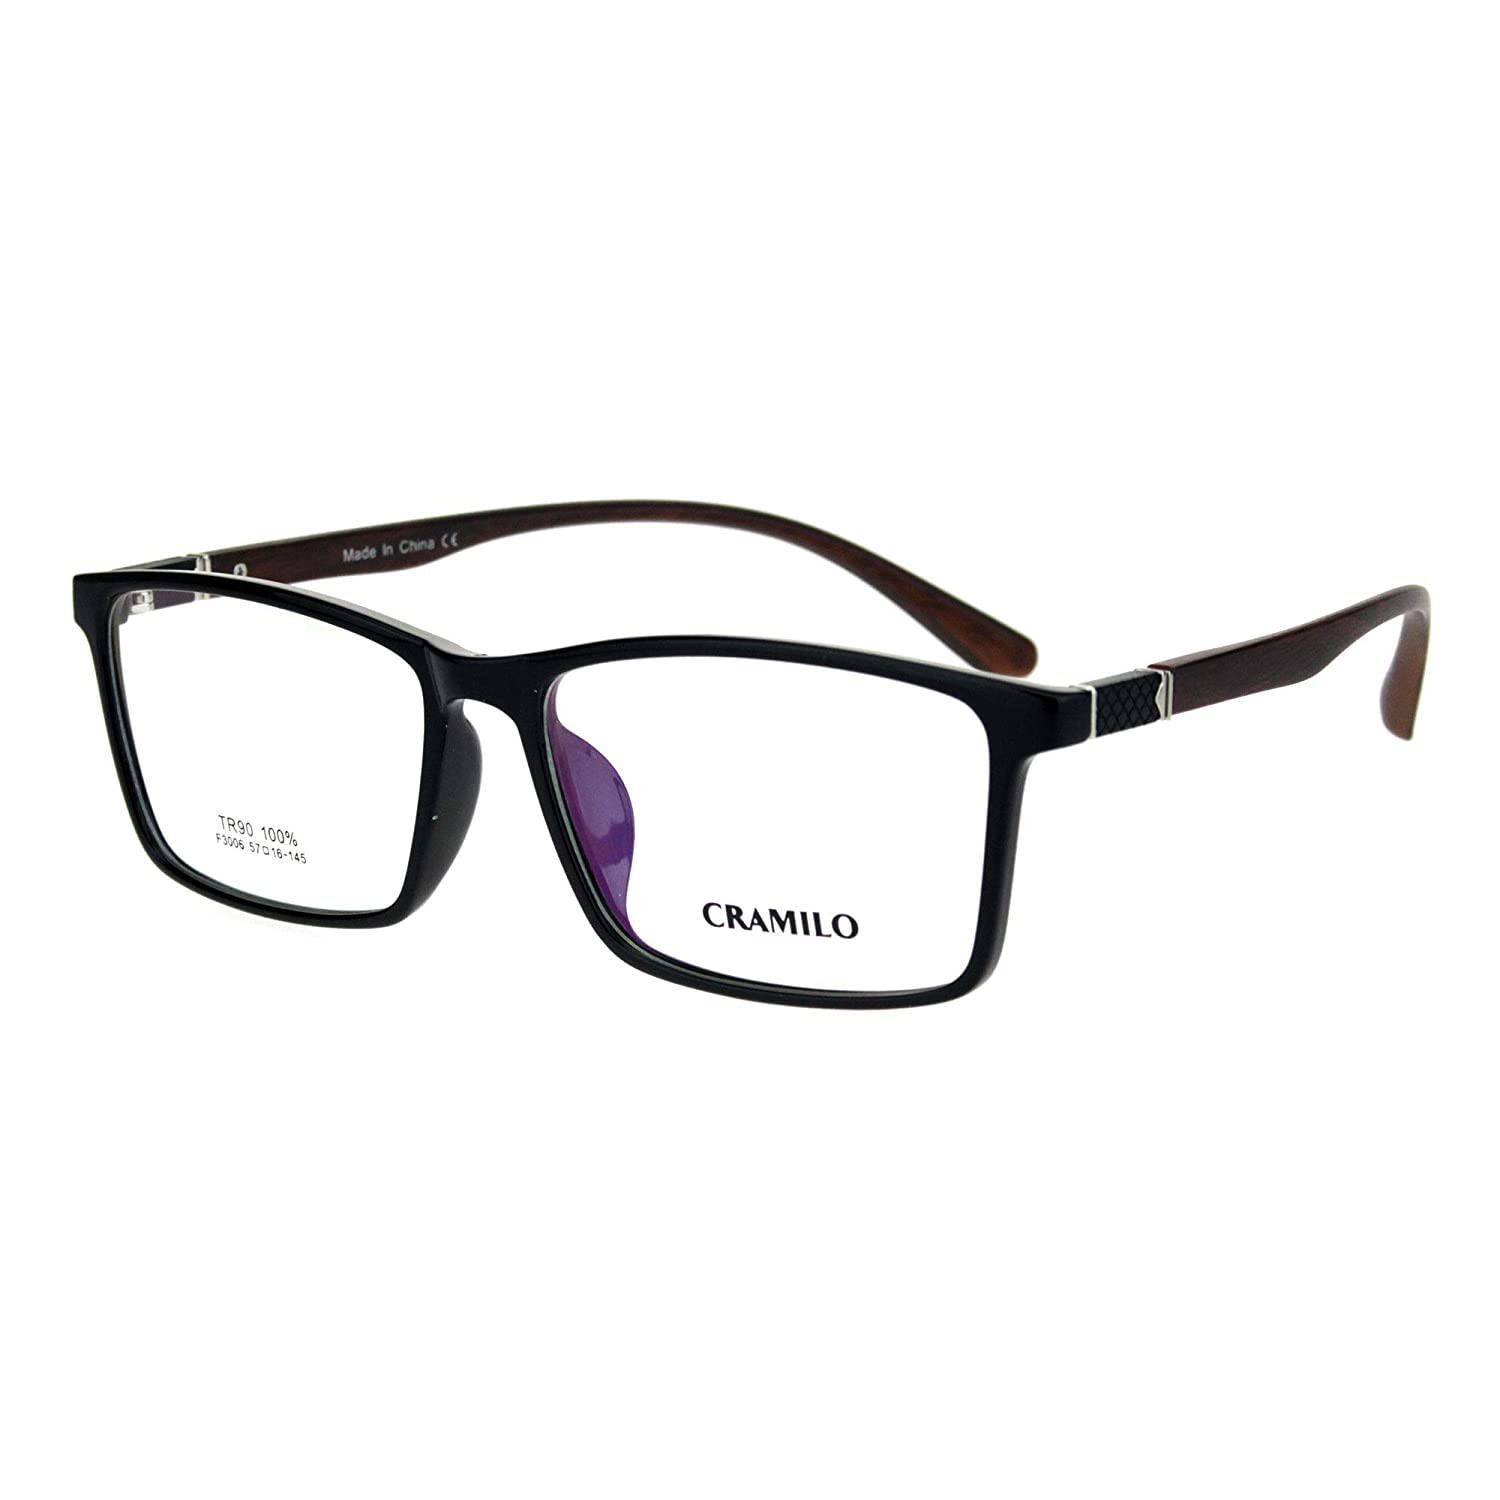 Mens Extra Wide 57mm TR90 Plastic Rectangular Optical Eyeglasses Frame irf3006-bkbl